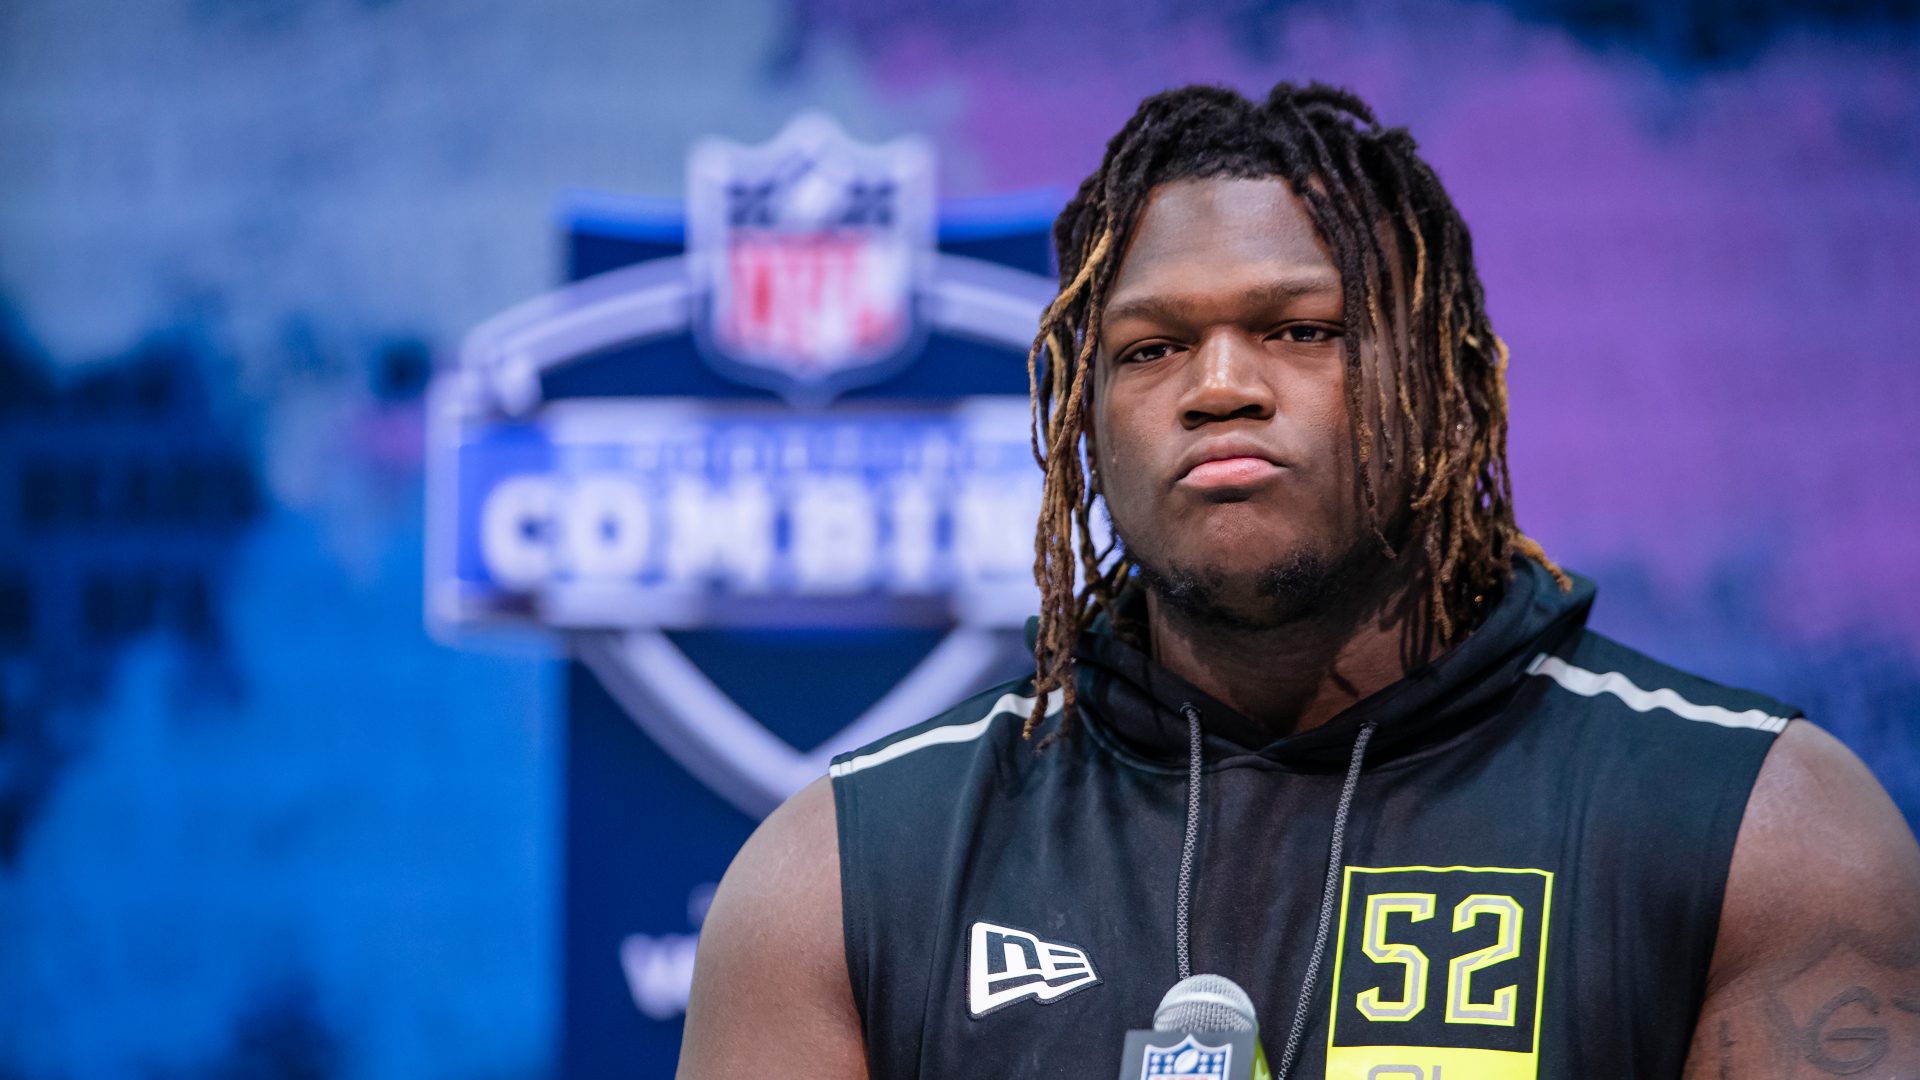 isaiah wilson nfl titans arrested dui charges round pick draft tennessee rodgers getty indiana indianapolis february packers mock georgia aaron